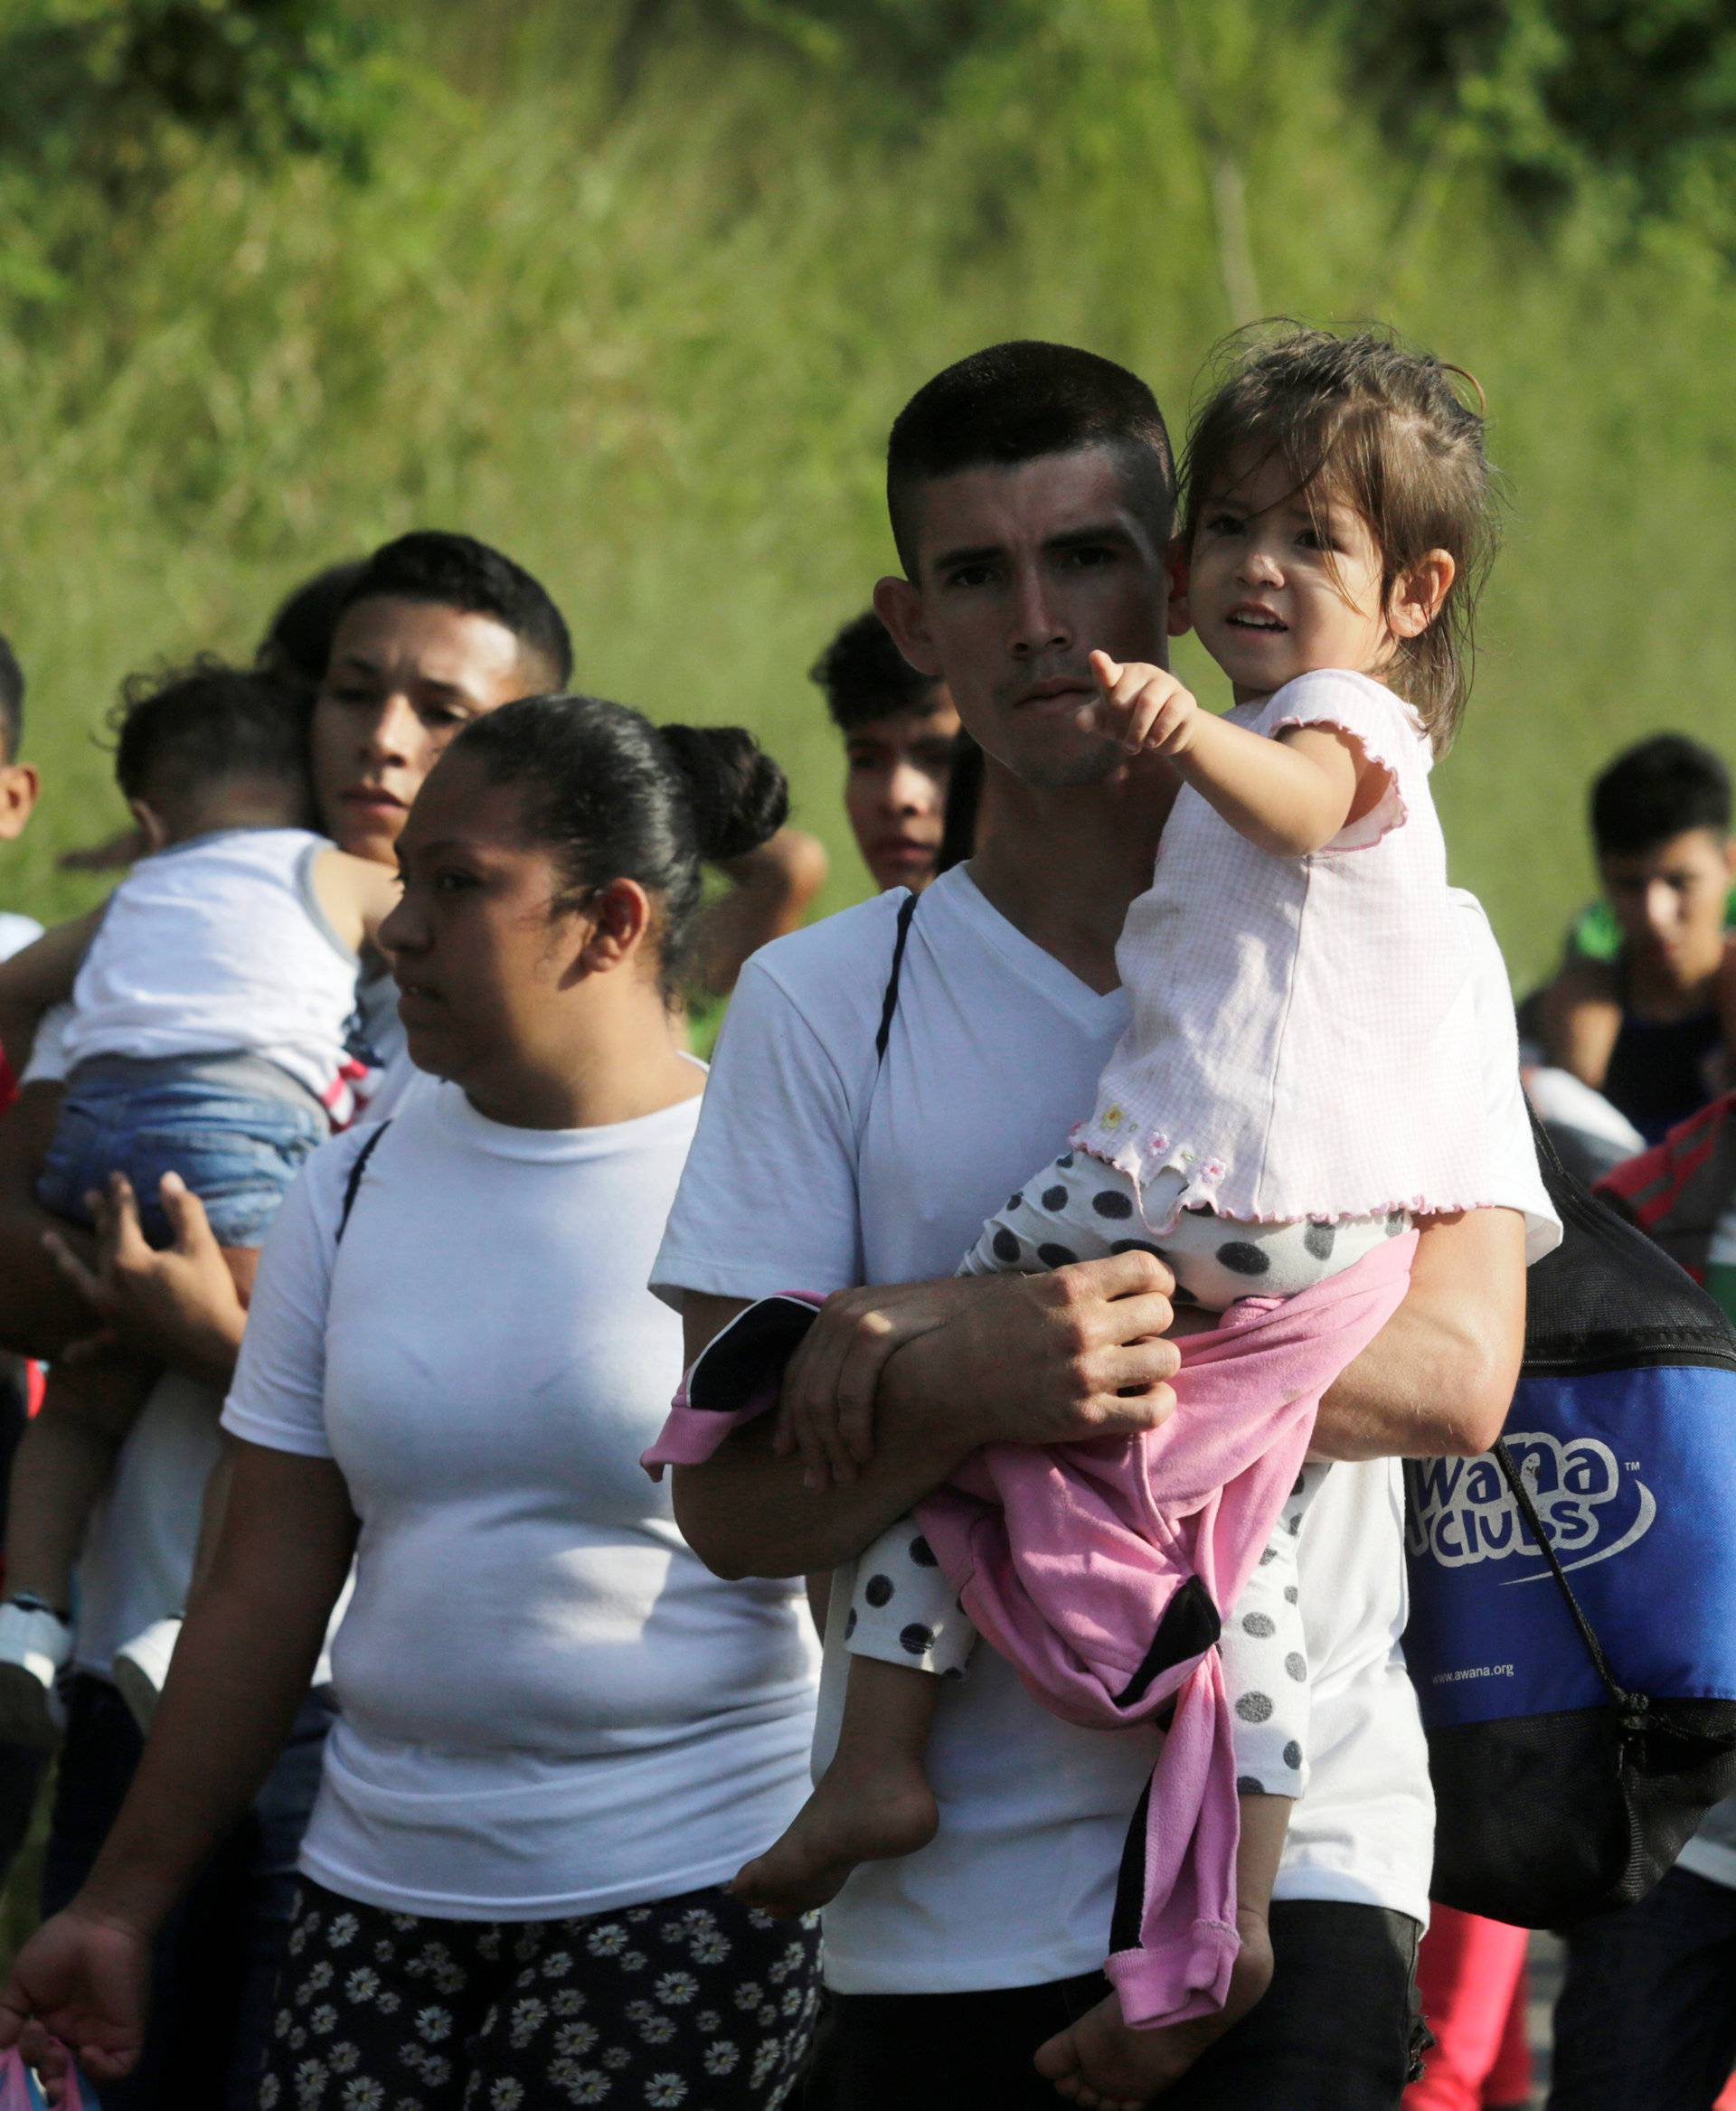 A man carries a child along other Hondurans fleeing poverty and violence, as they move in a caravan toward the United States, in San Pedro Sula